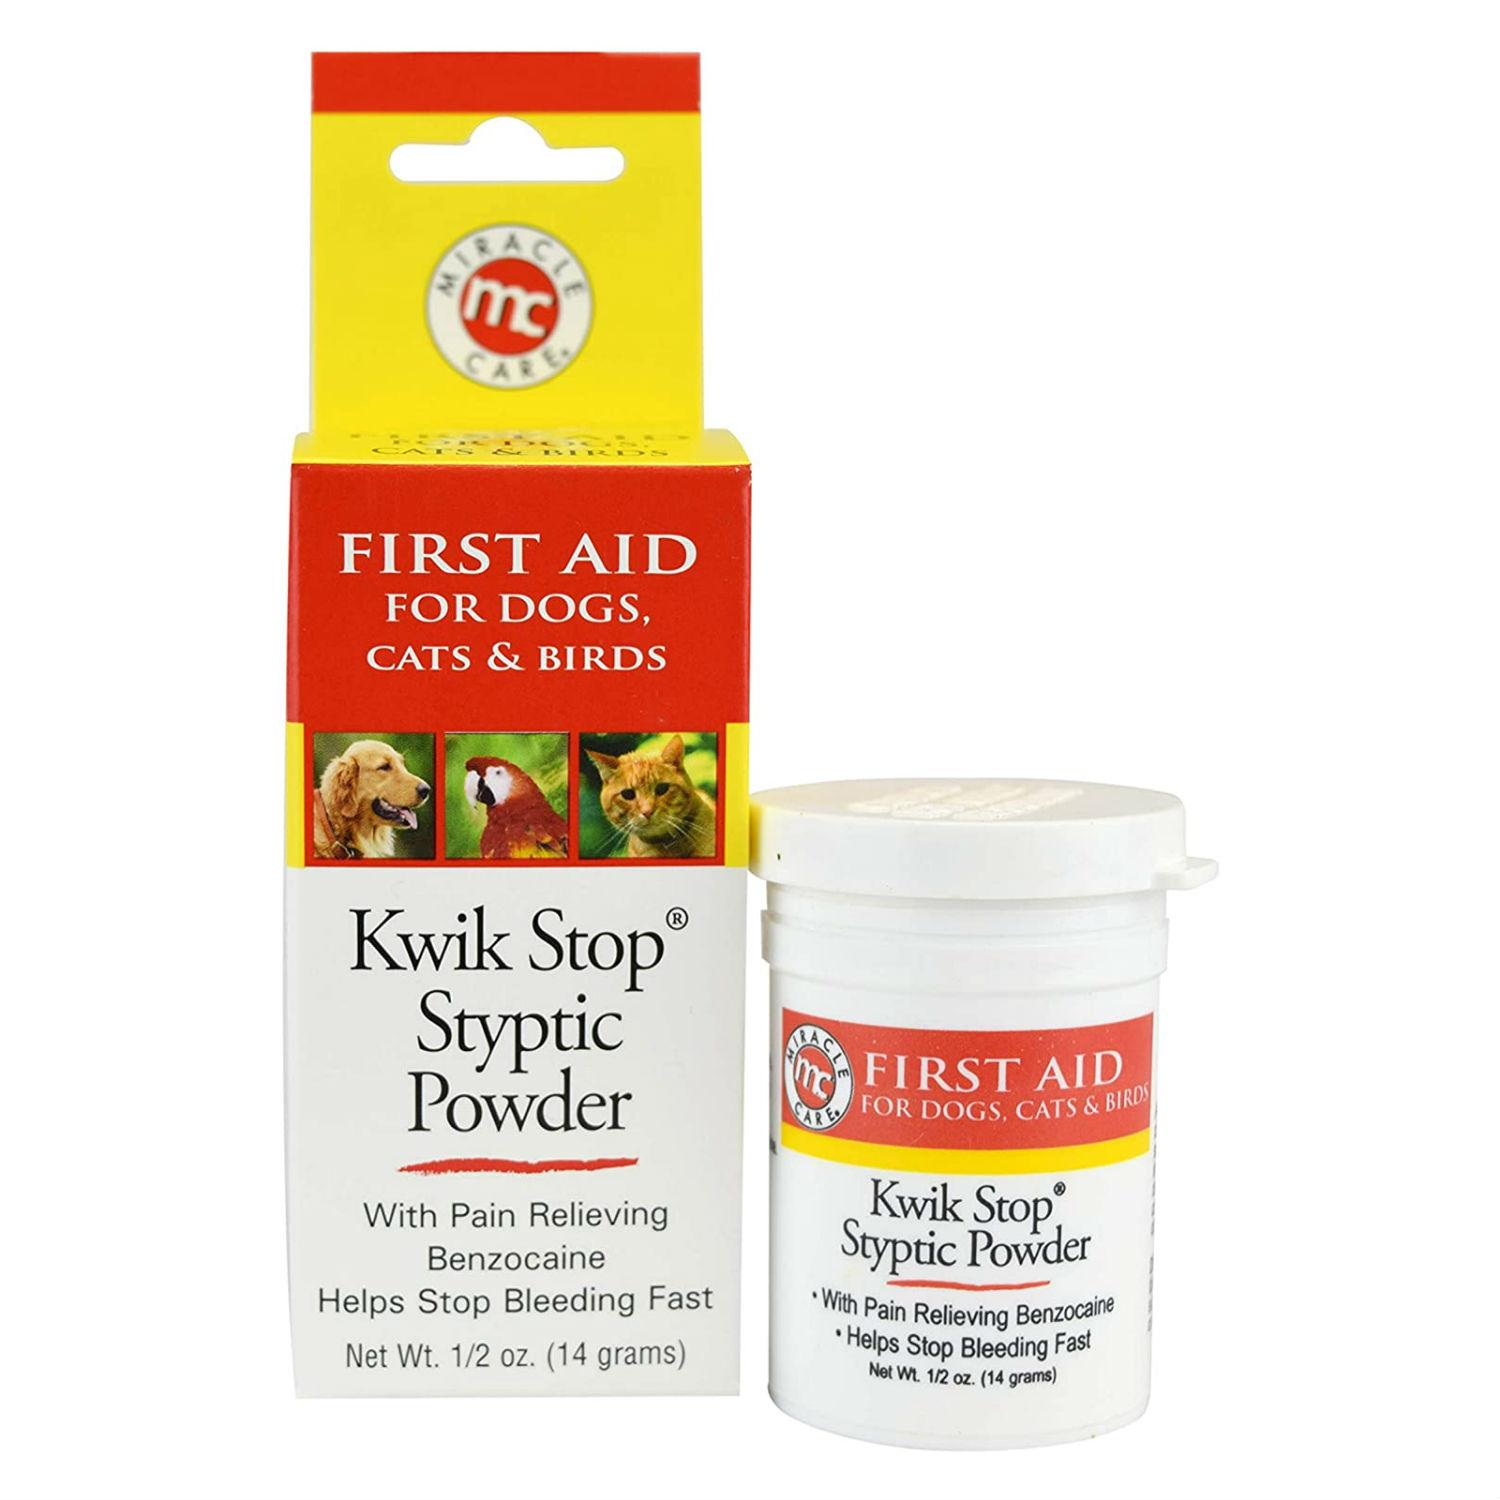 Miracle Care Gimborn Kwik Stop Styptic Powder for Dogs and Cats